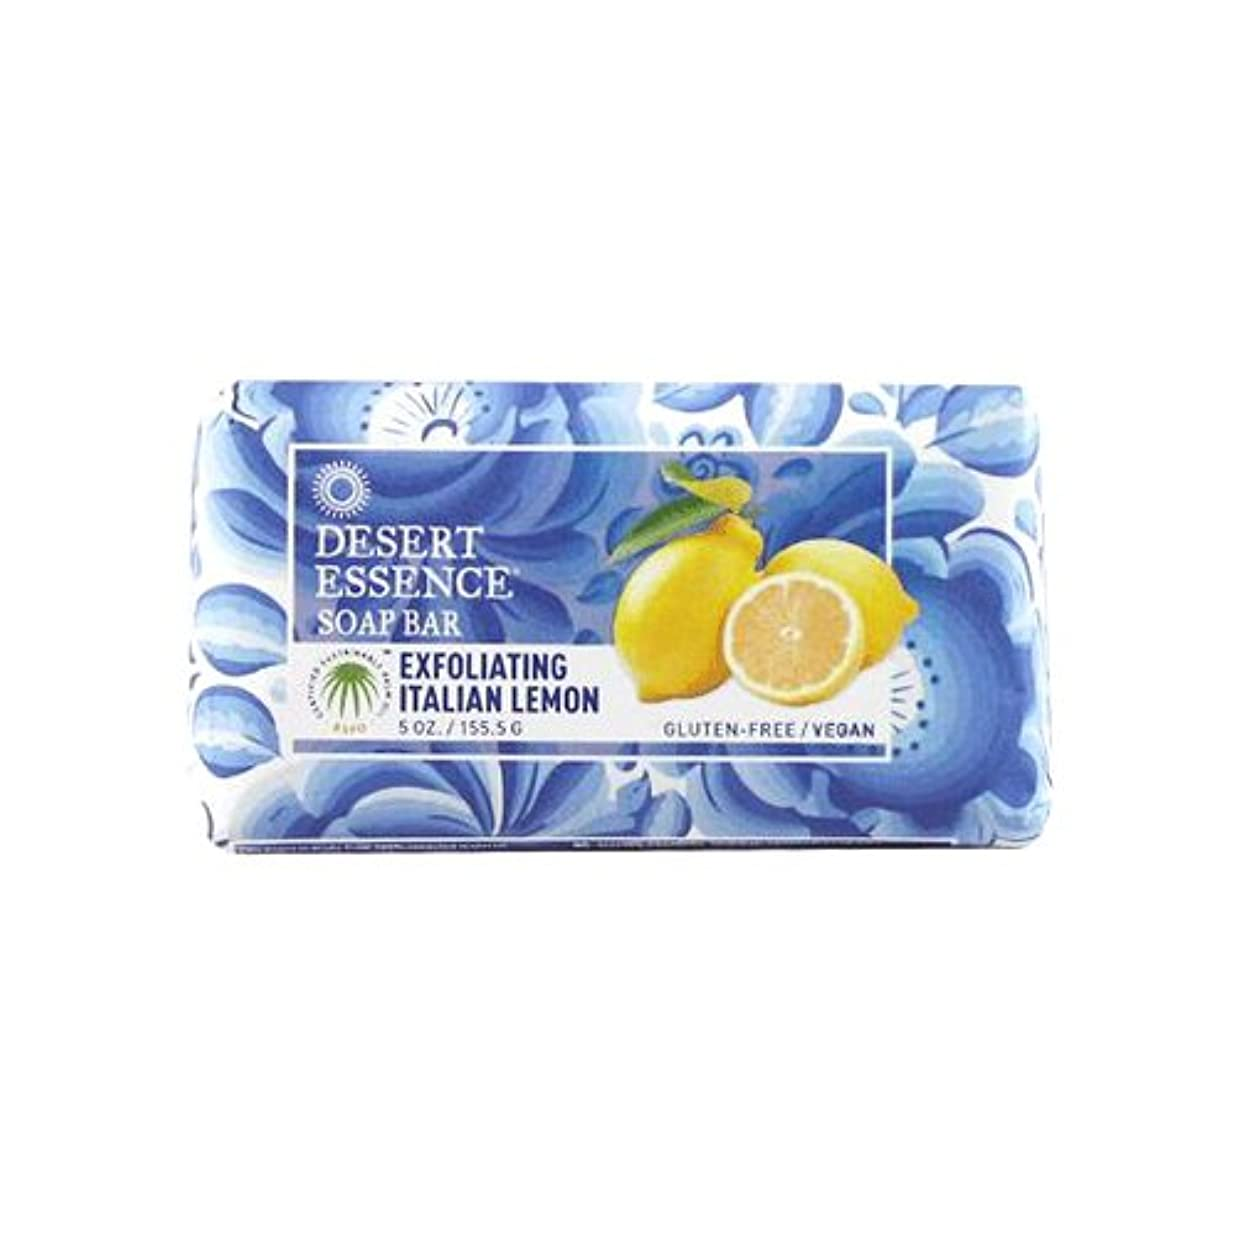 露出度の高い思い出させる恩赦Desert Essence Bar Soap - Exfoliating Italian Lemon - 5 oz